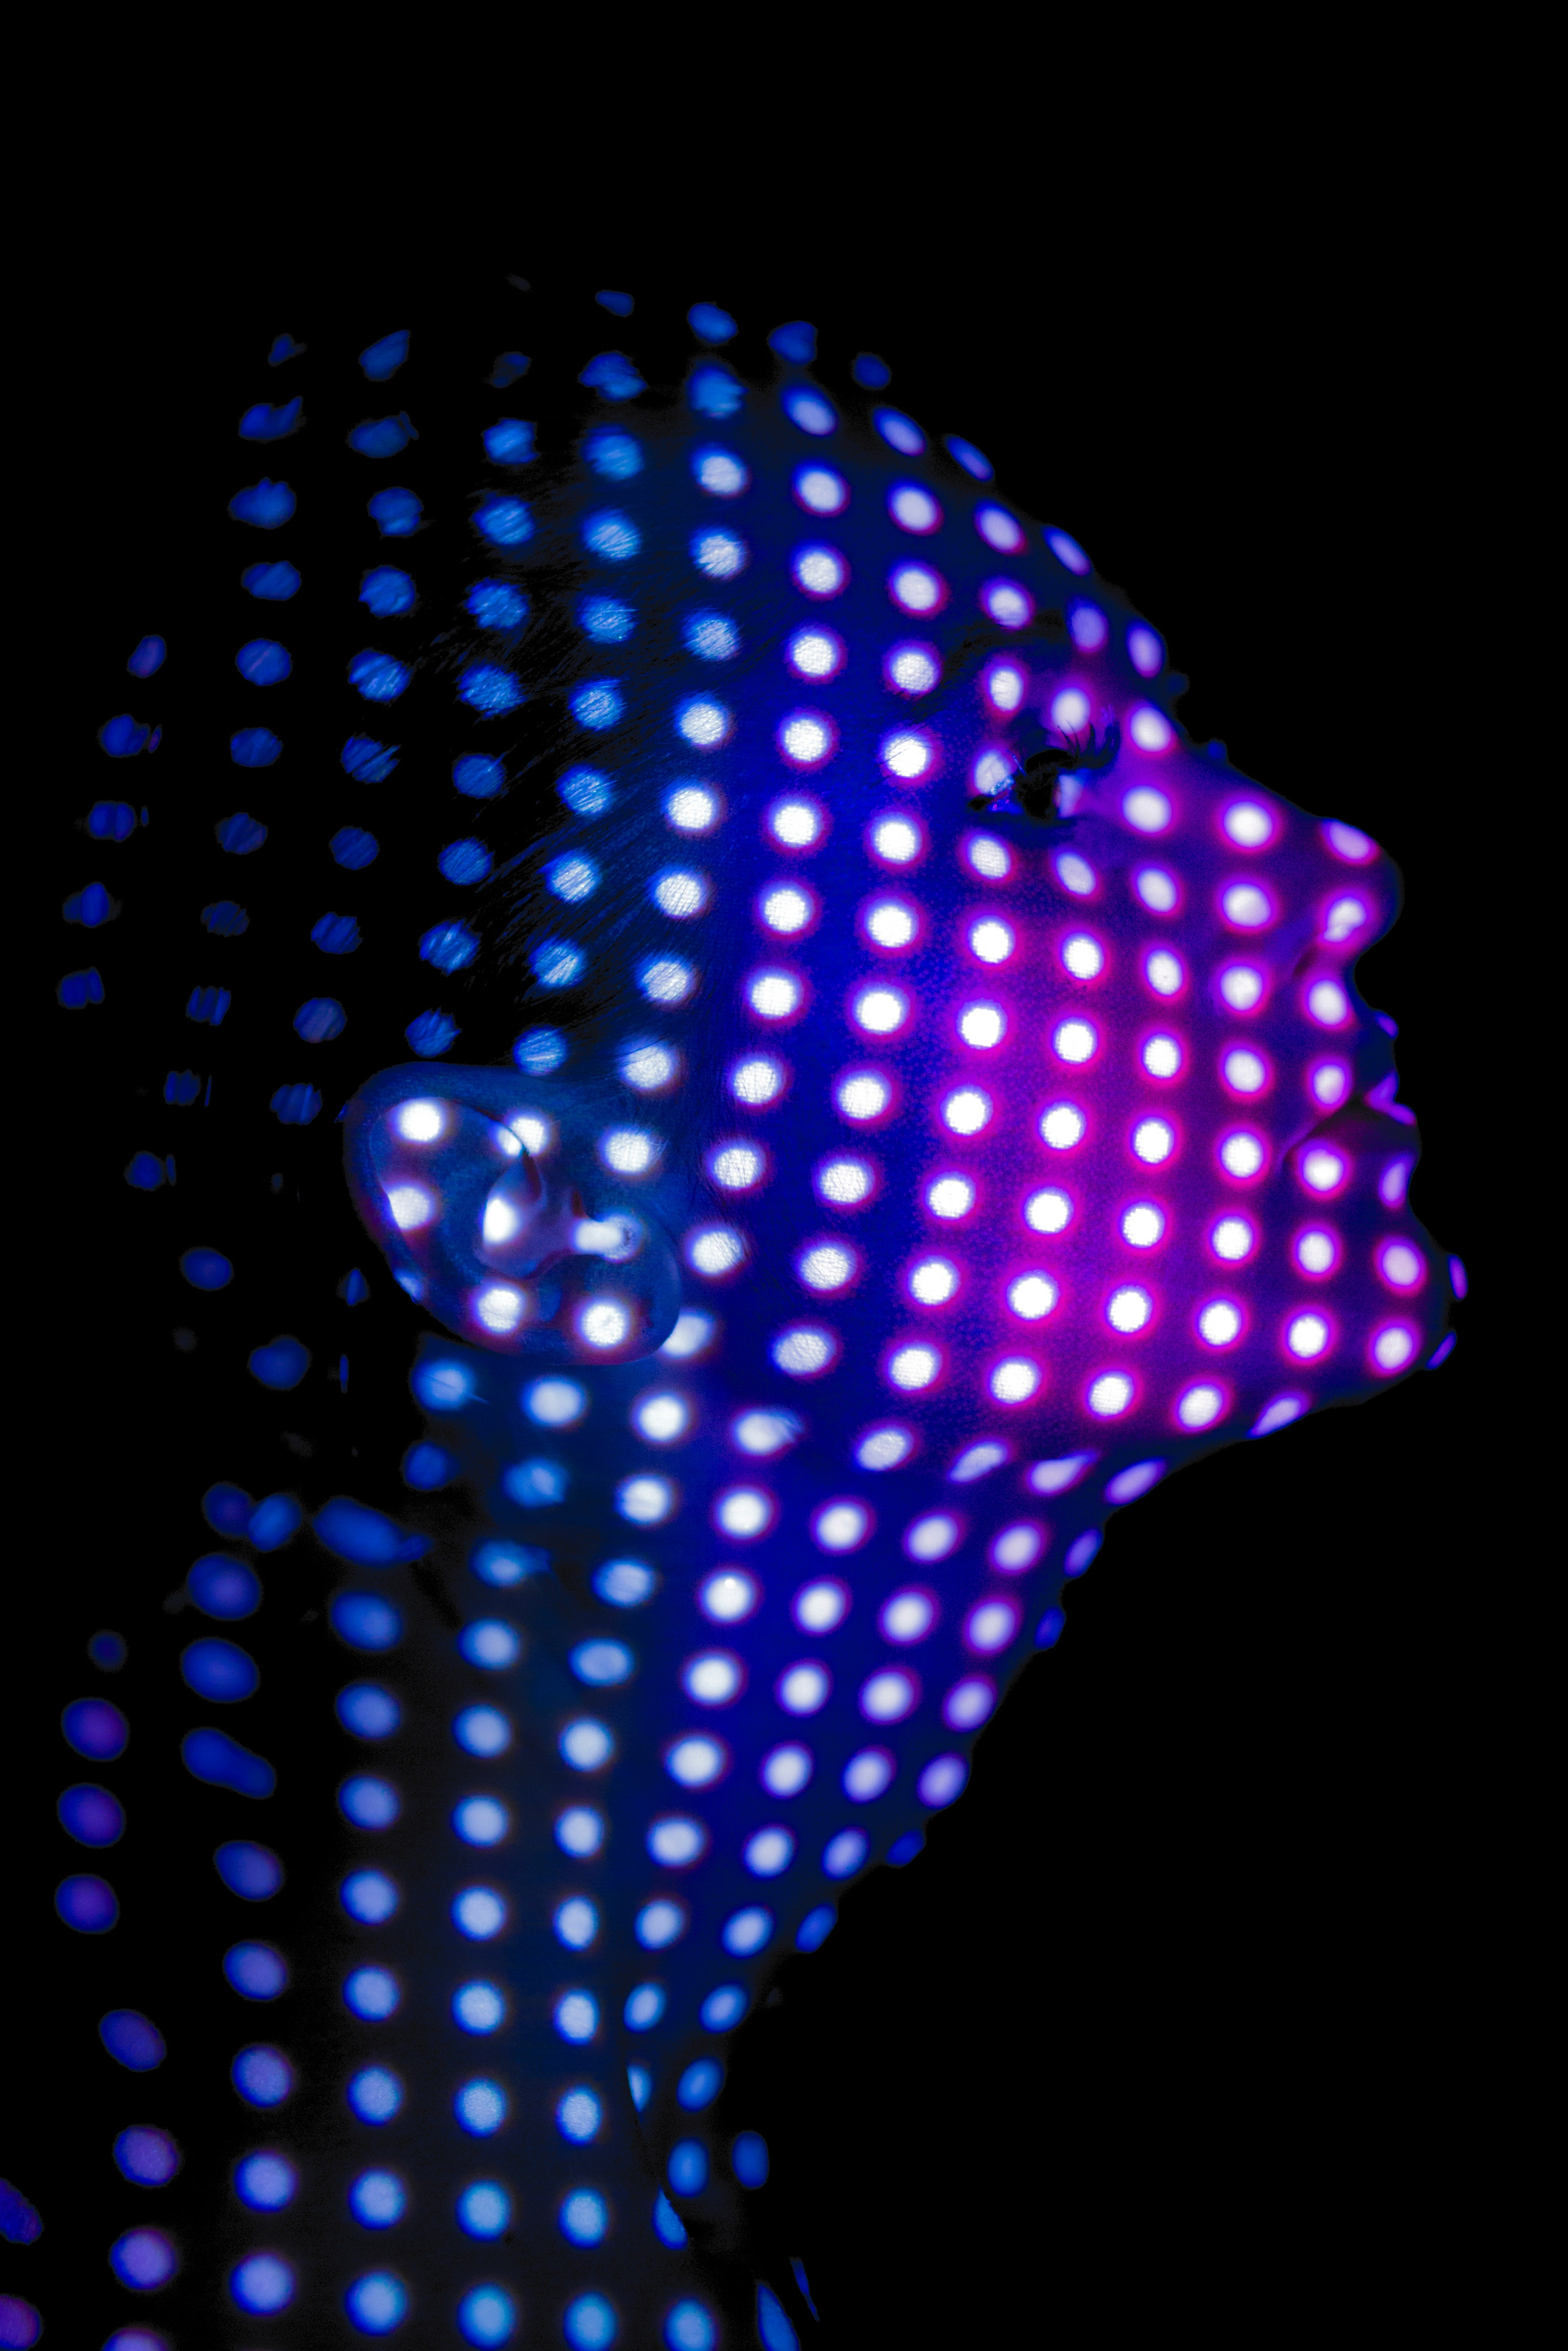 Woman Covered With Polka Dot Lights